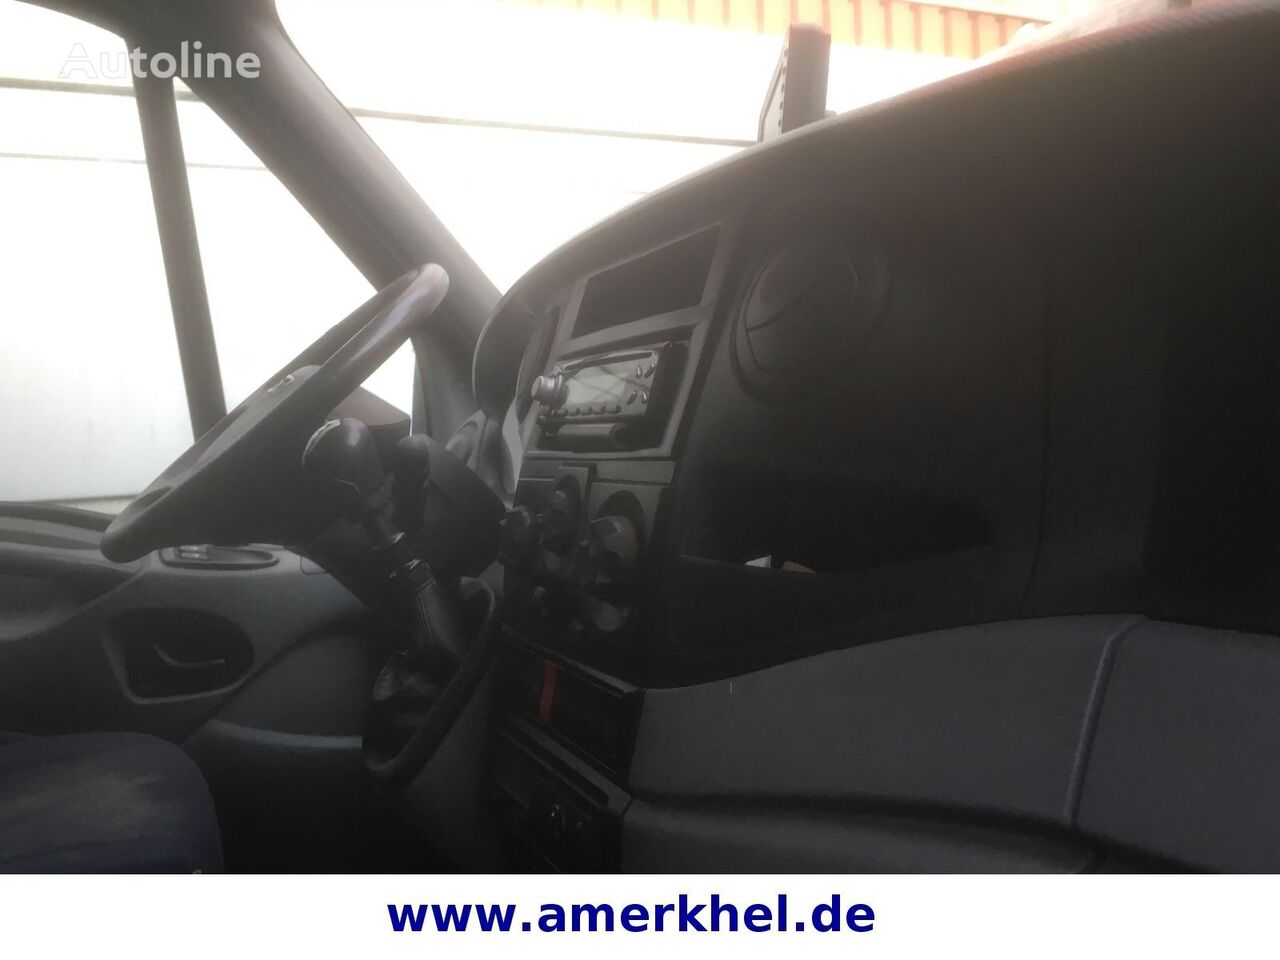 IVECO Daily c 50 cl ups Koffer LKW